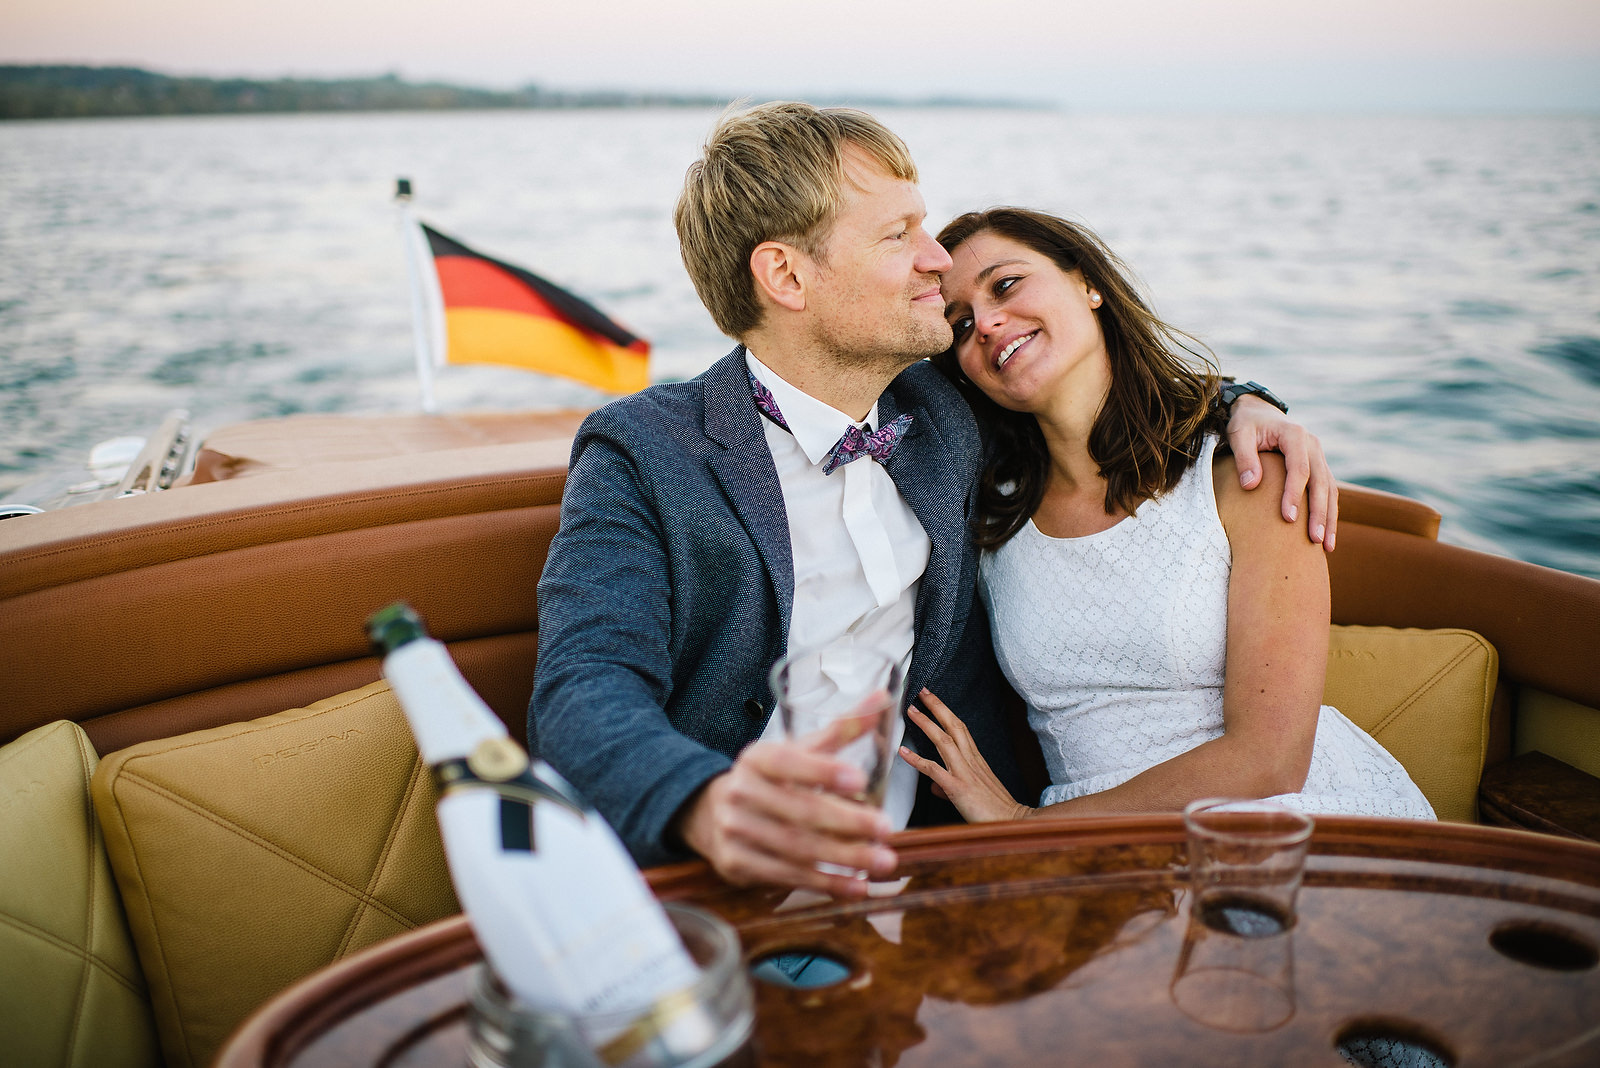 Fotograf Konstanz - Classic Boat Pegiva Shooting Bodensee Hochzeit Erlebnis EFP 45 - Experience a Pegiva boat shooting on Lake Constance  - 12 -